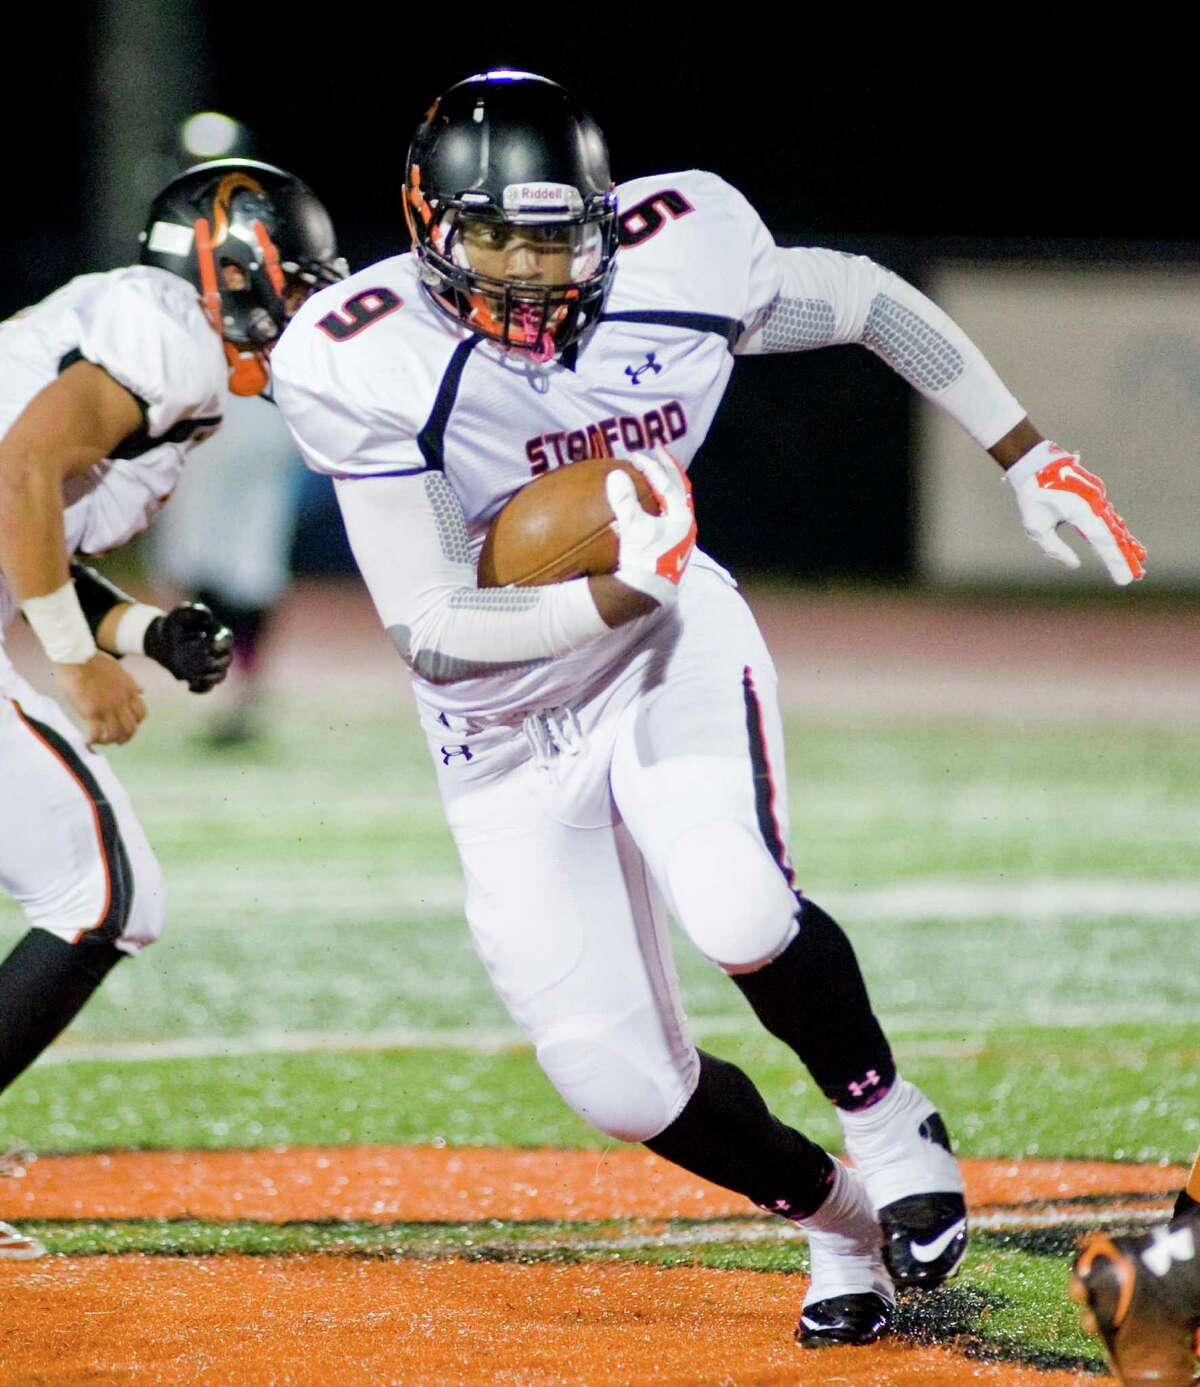 Stamford High School's Tyrell Diaz finds a hole in the Ridgefield High School line during a game at Ridgefield. Oct. 10, 2014